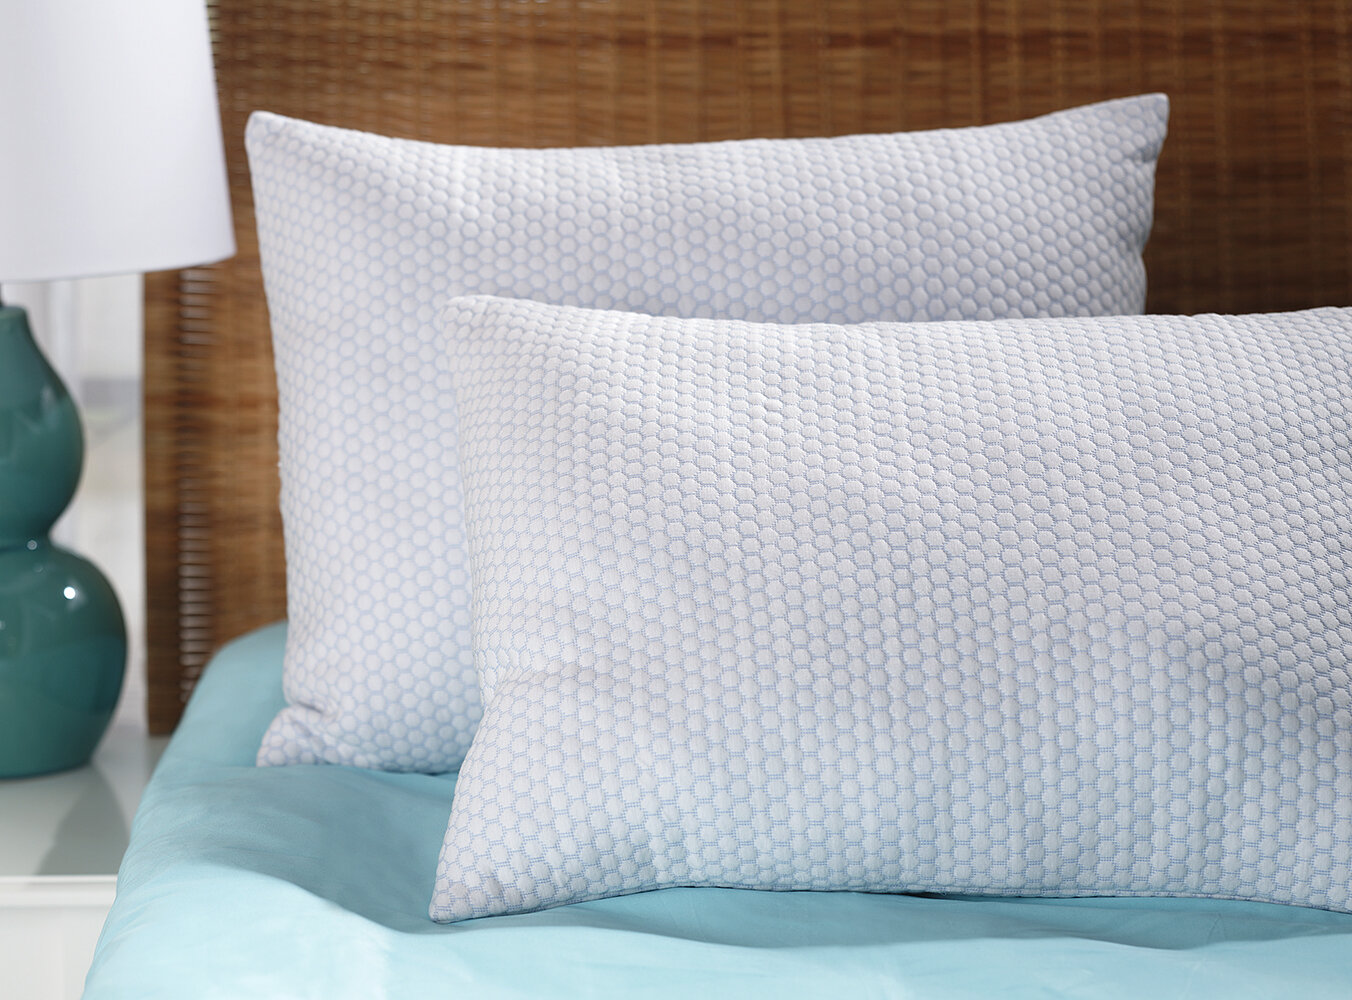 Two clean, white pillows on blue bedding